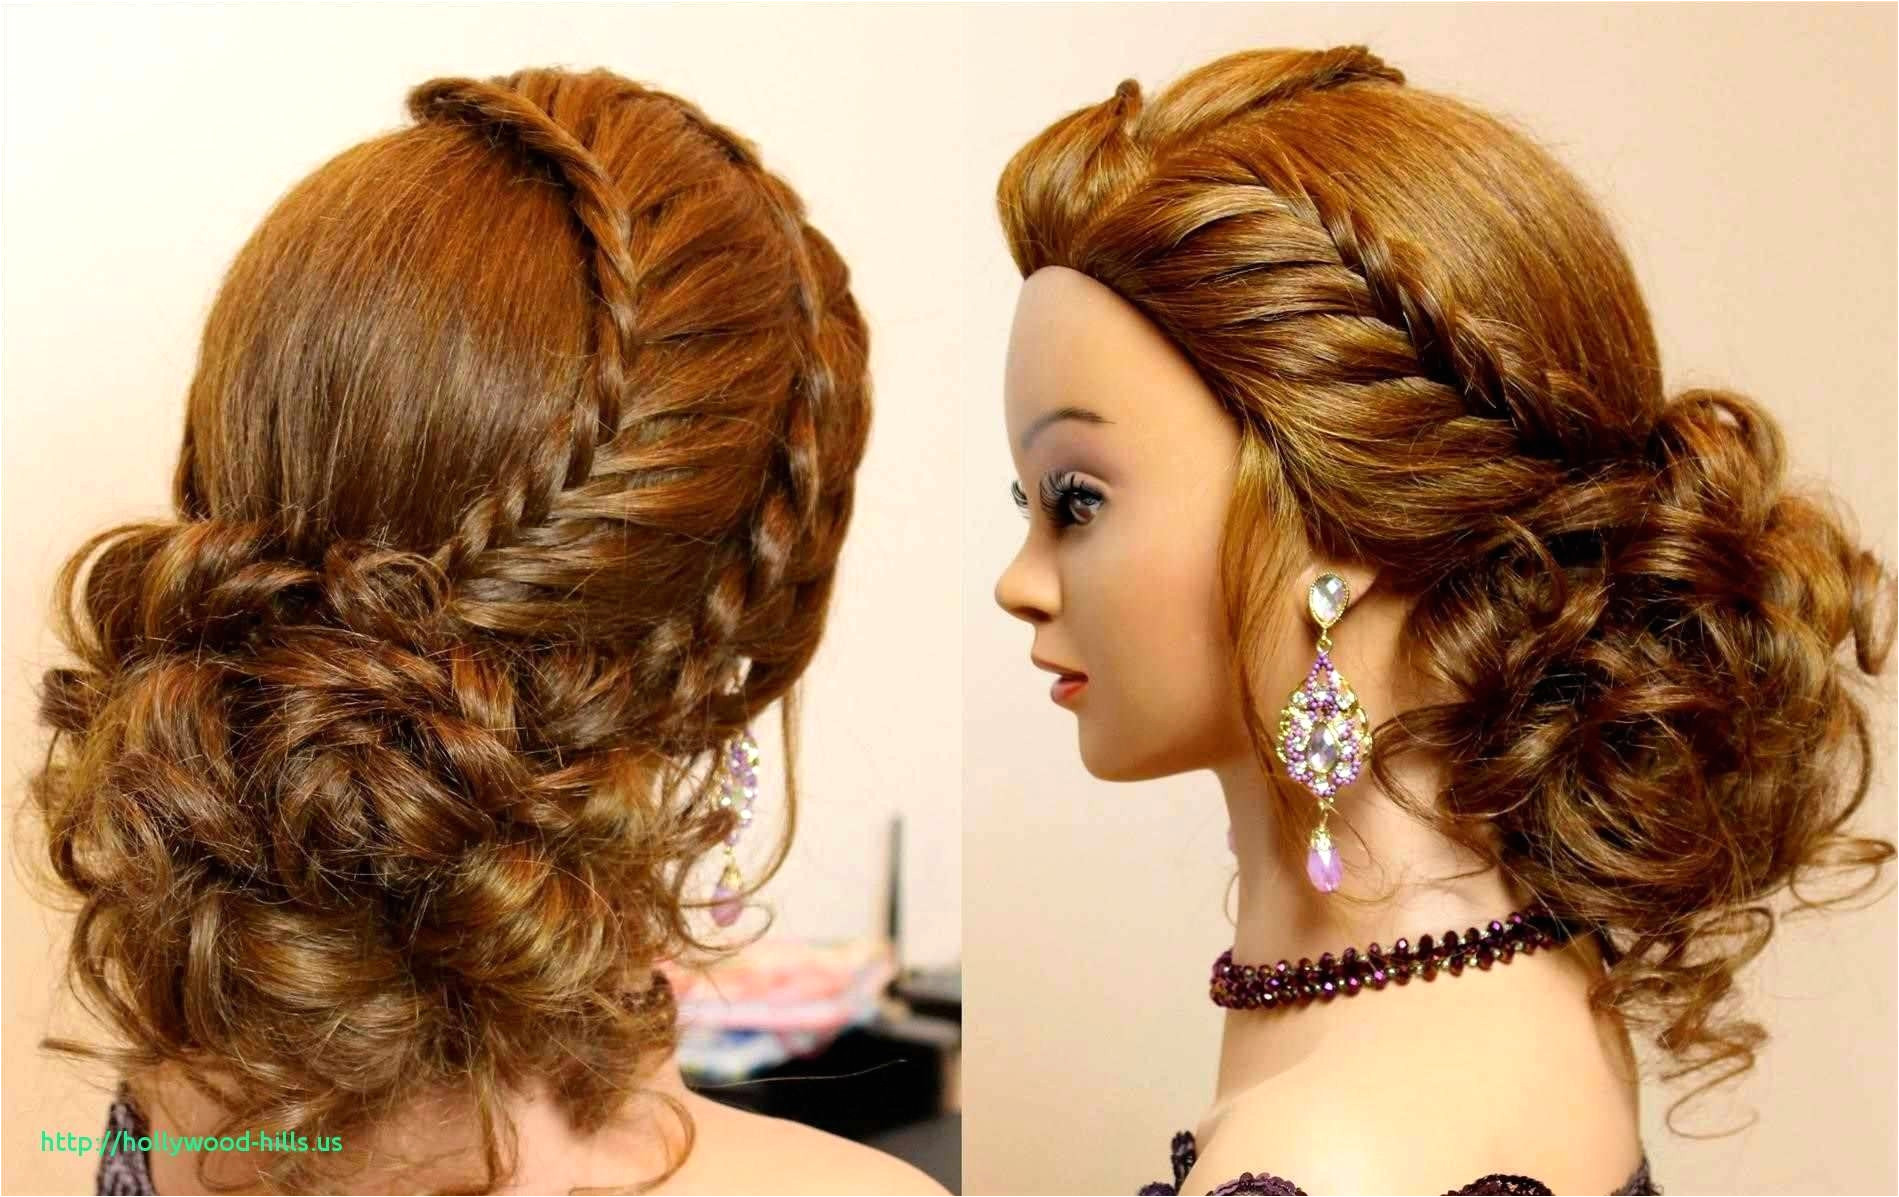 Cute Hairstyles for Medium Length Hair Elegant Hairstyles for Long Hair Dailymotion 2015 New Twist Hairstyles for